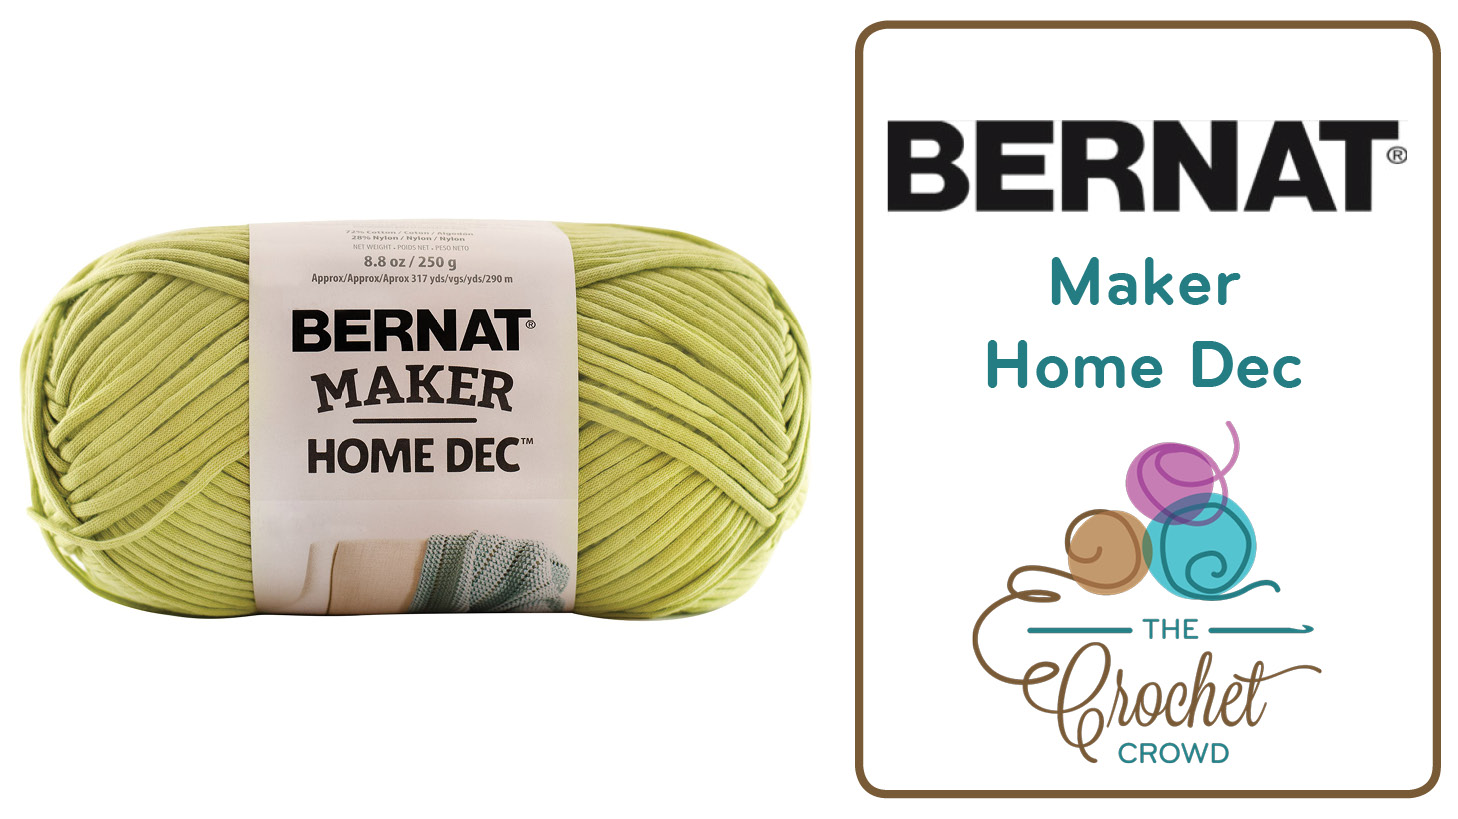 What To Do With Bernat Maker Home Dec Yarn The Crochet Crowd